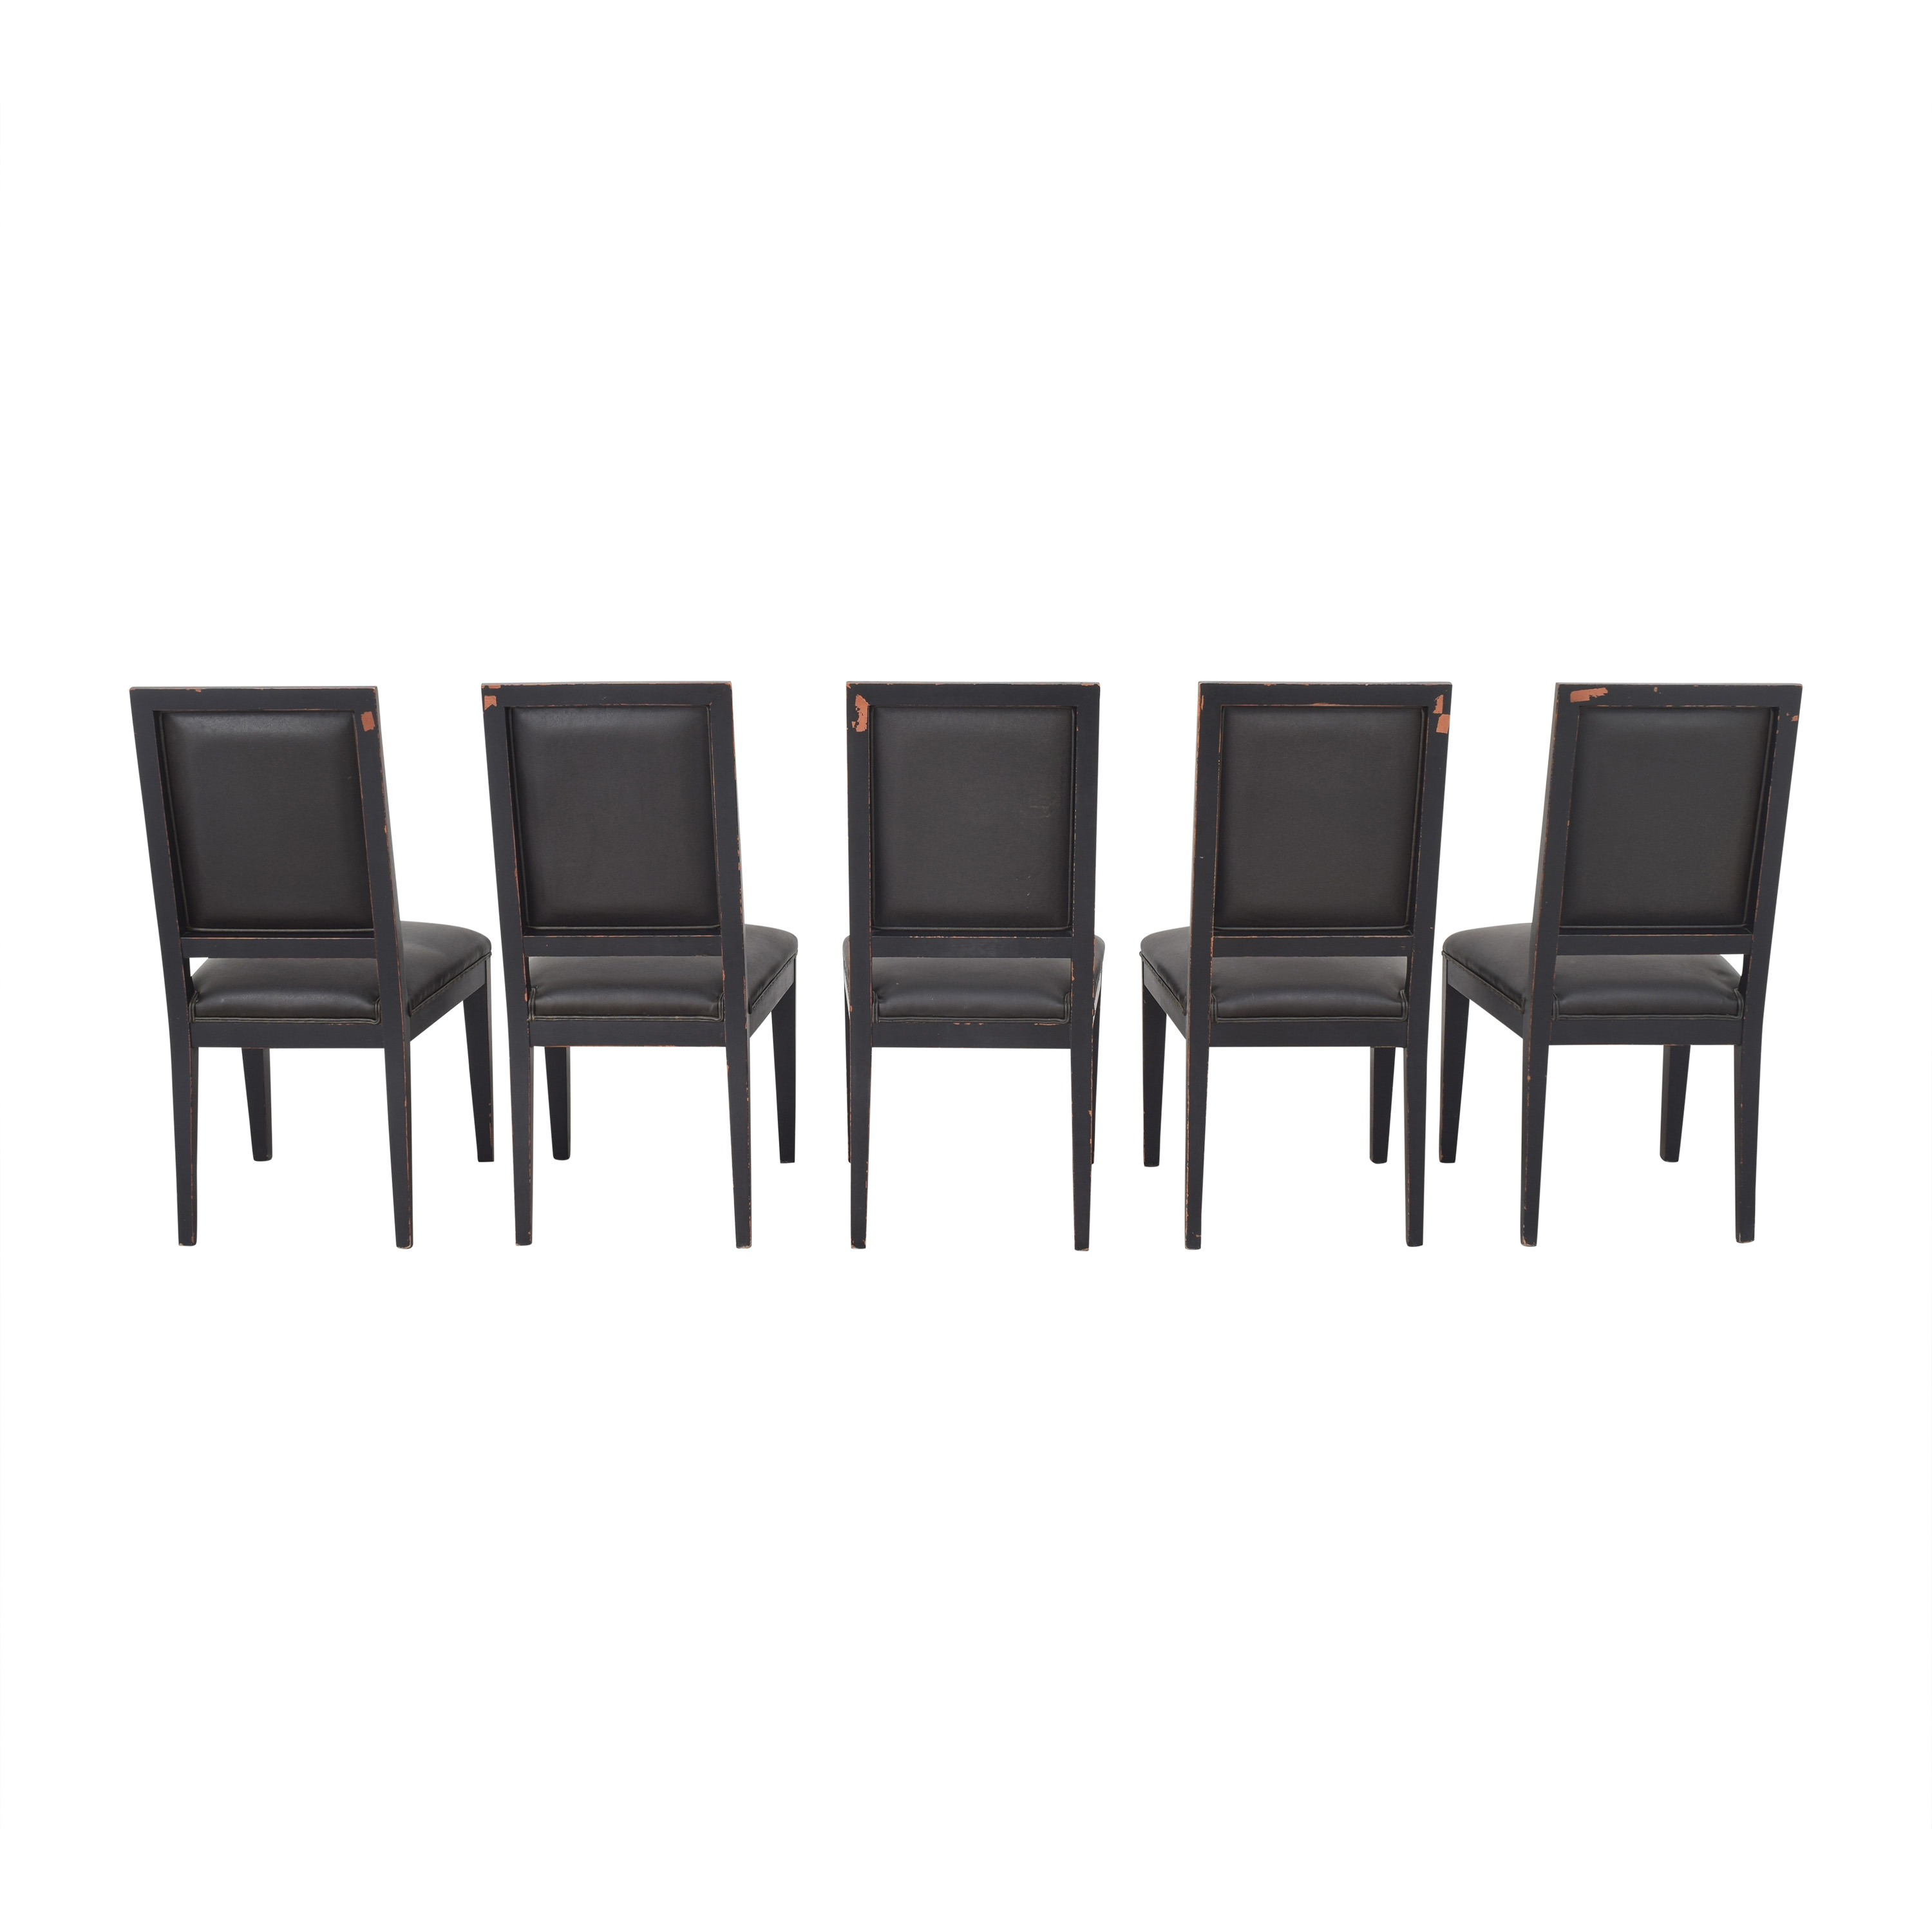 Crate & Barrel Crate & Barrel High Back Dining Chairs for sale